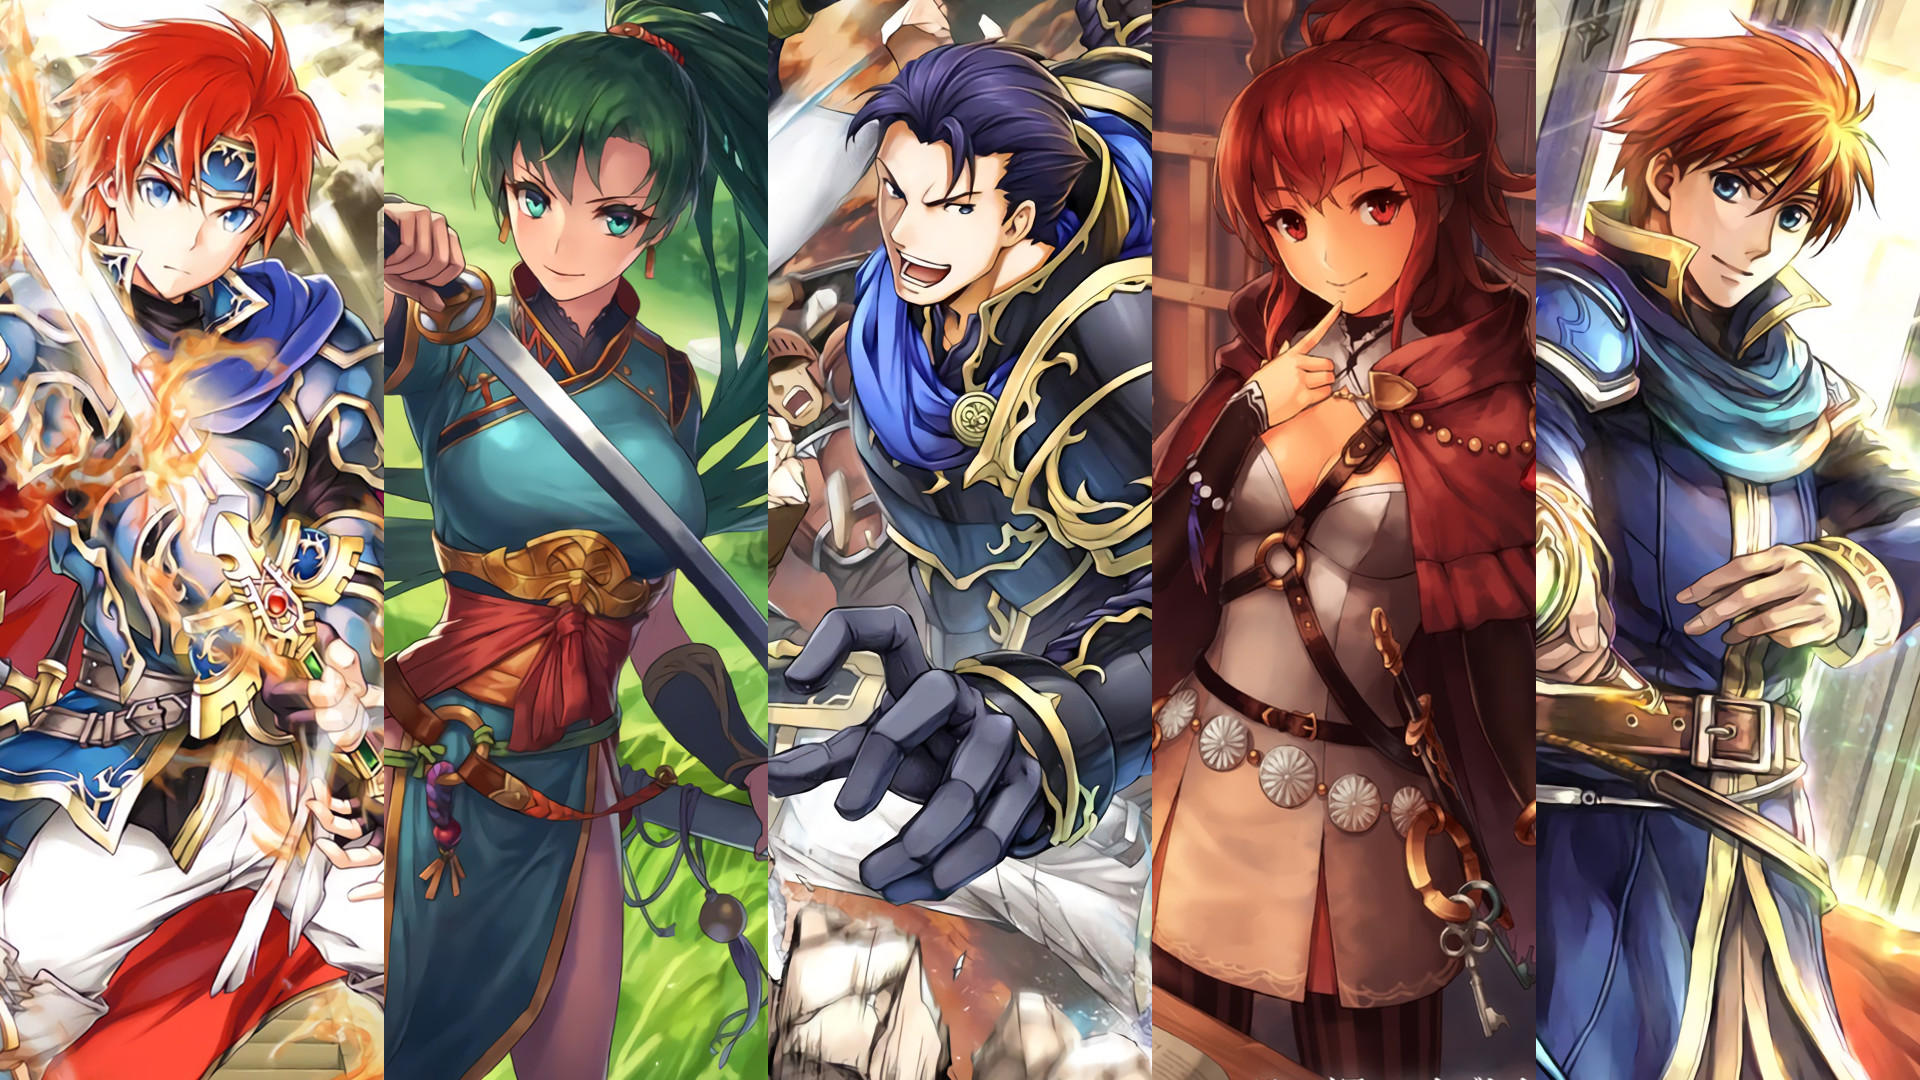 Res: 1920x1080, I use Wallpaper Engine nowadays but I could help make some more FE  wallpapers if you'd like, it's always a fun thing to do.